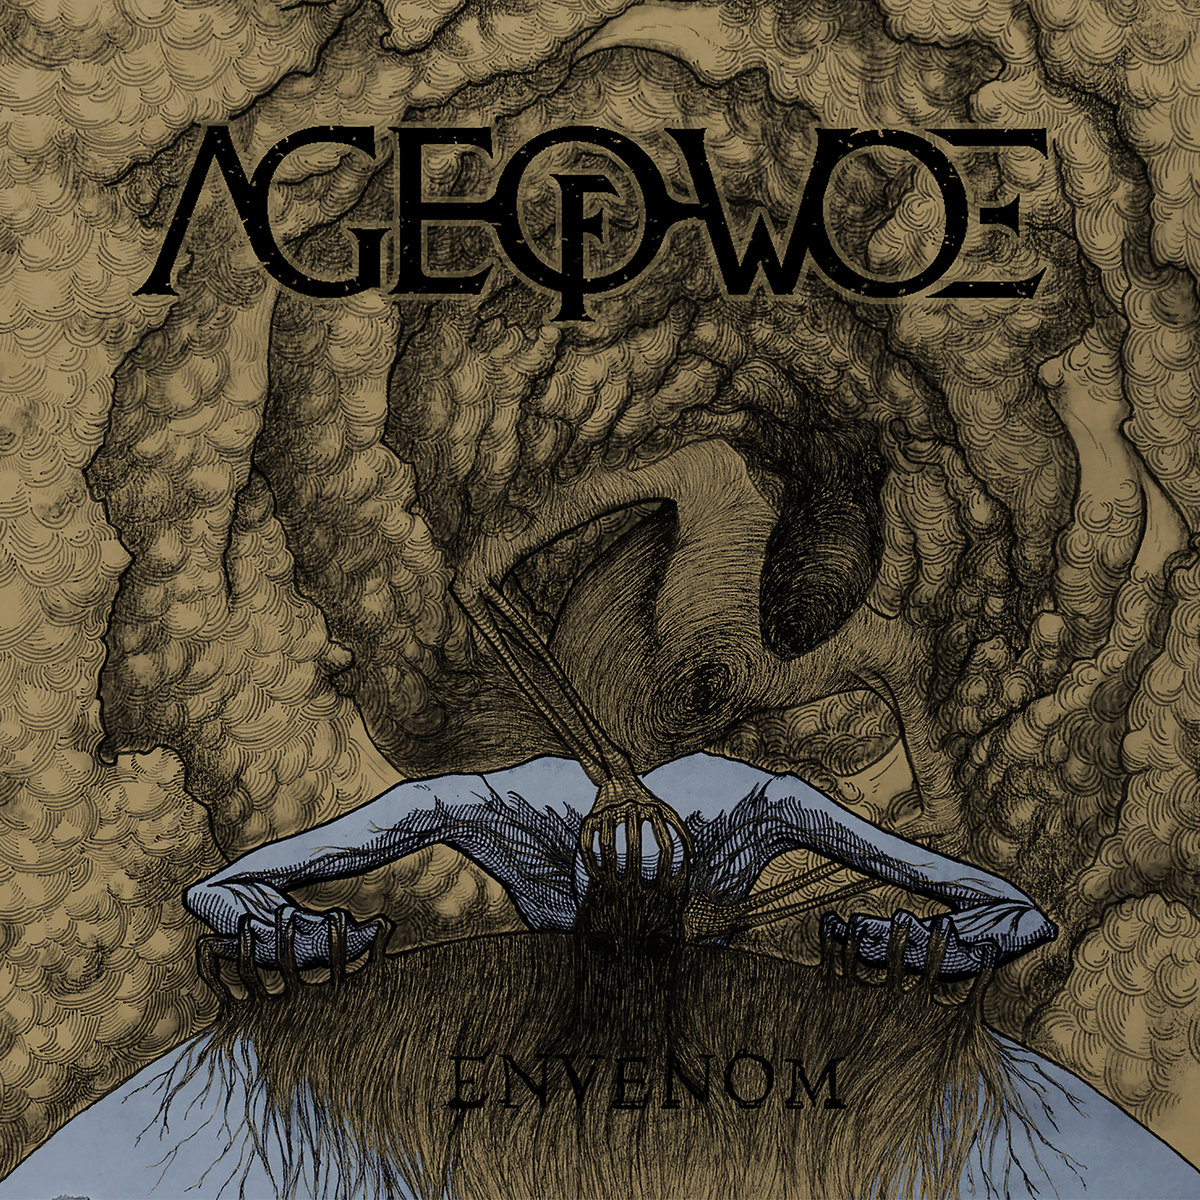 Envenom Age of Woe Album Cover Artwork